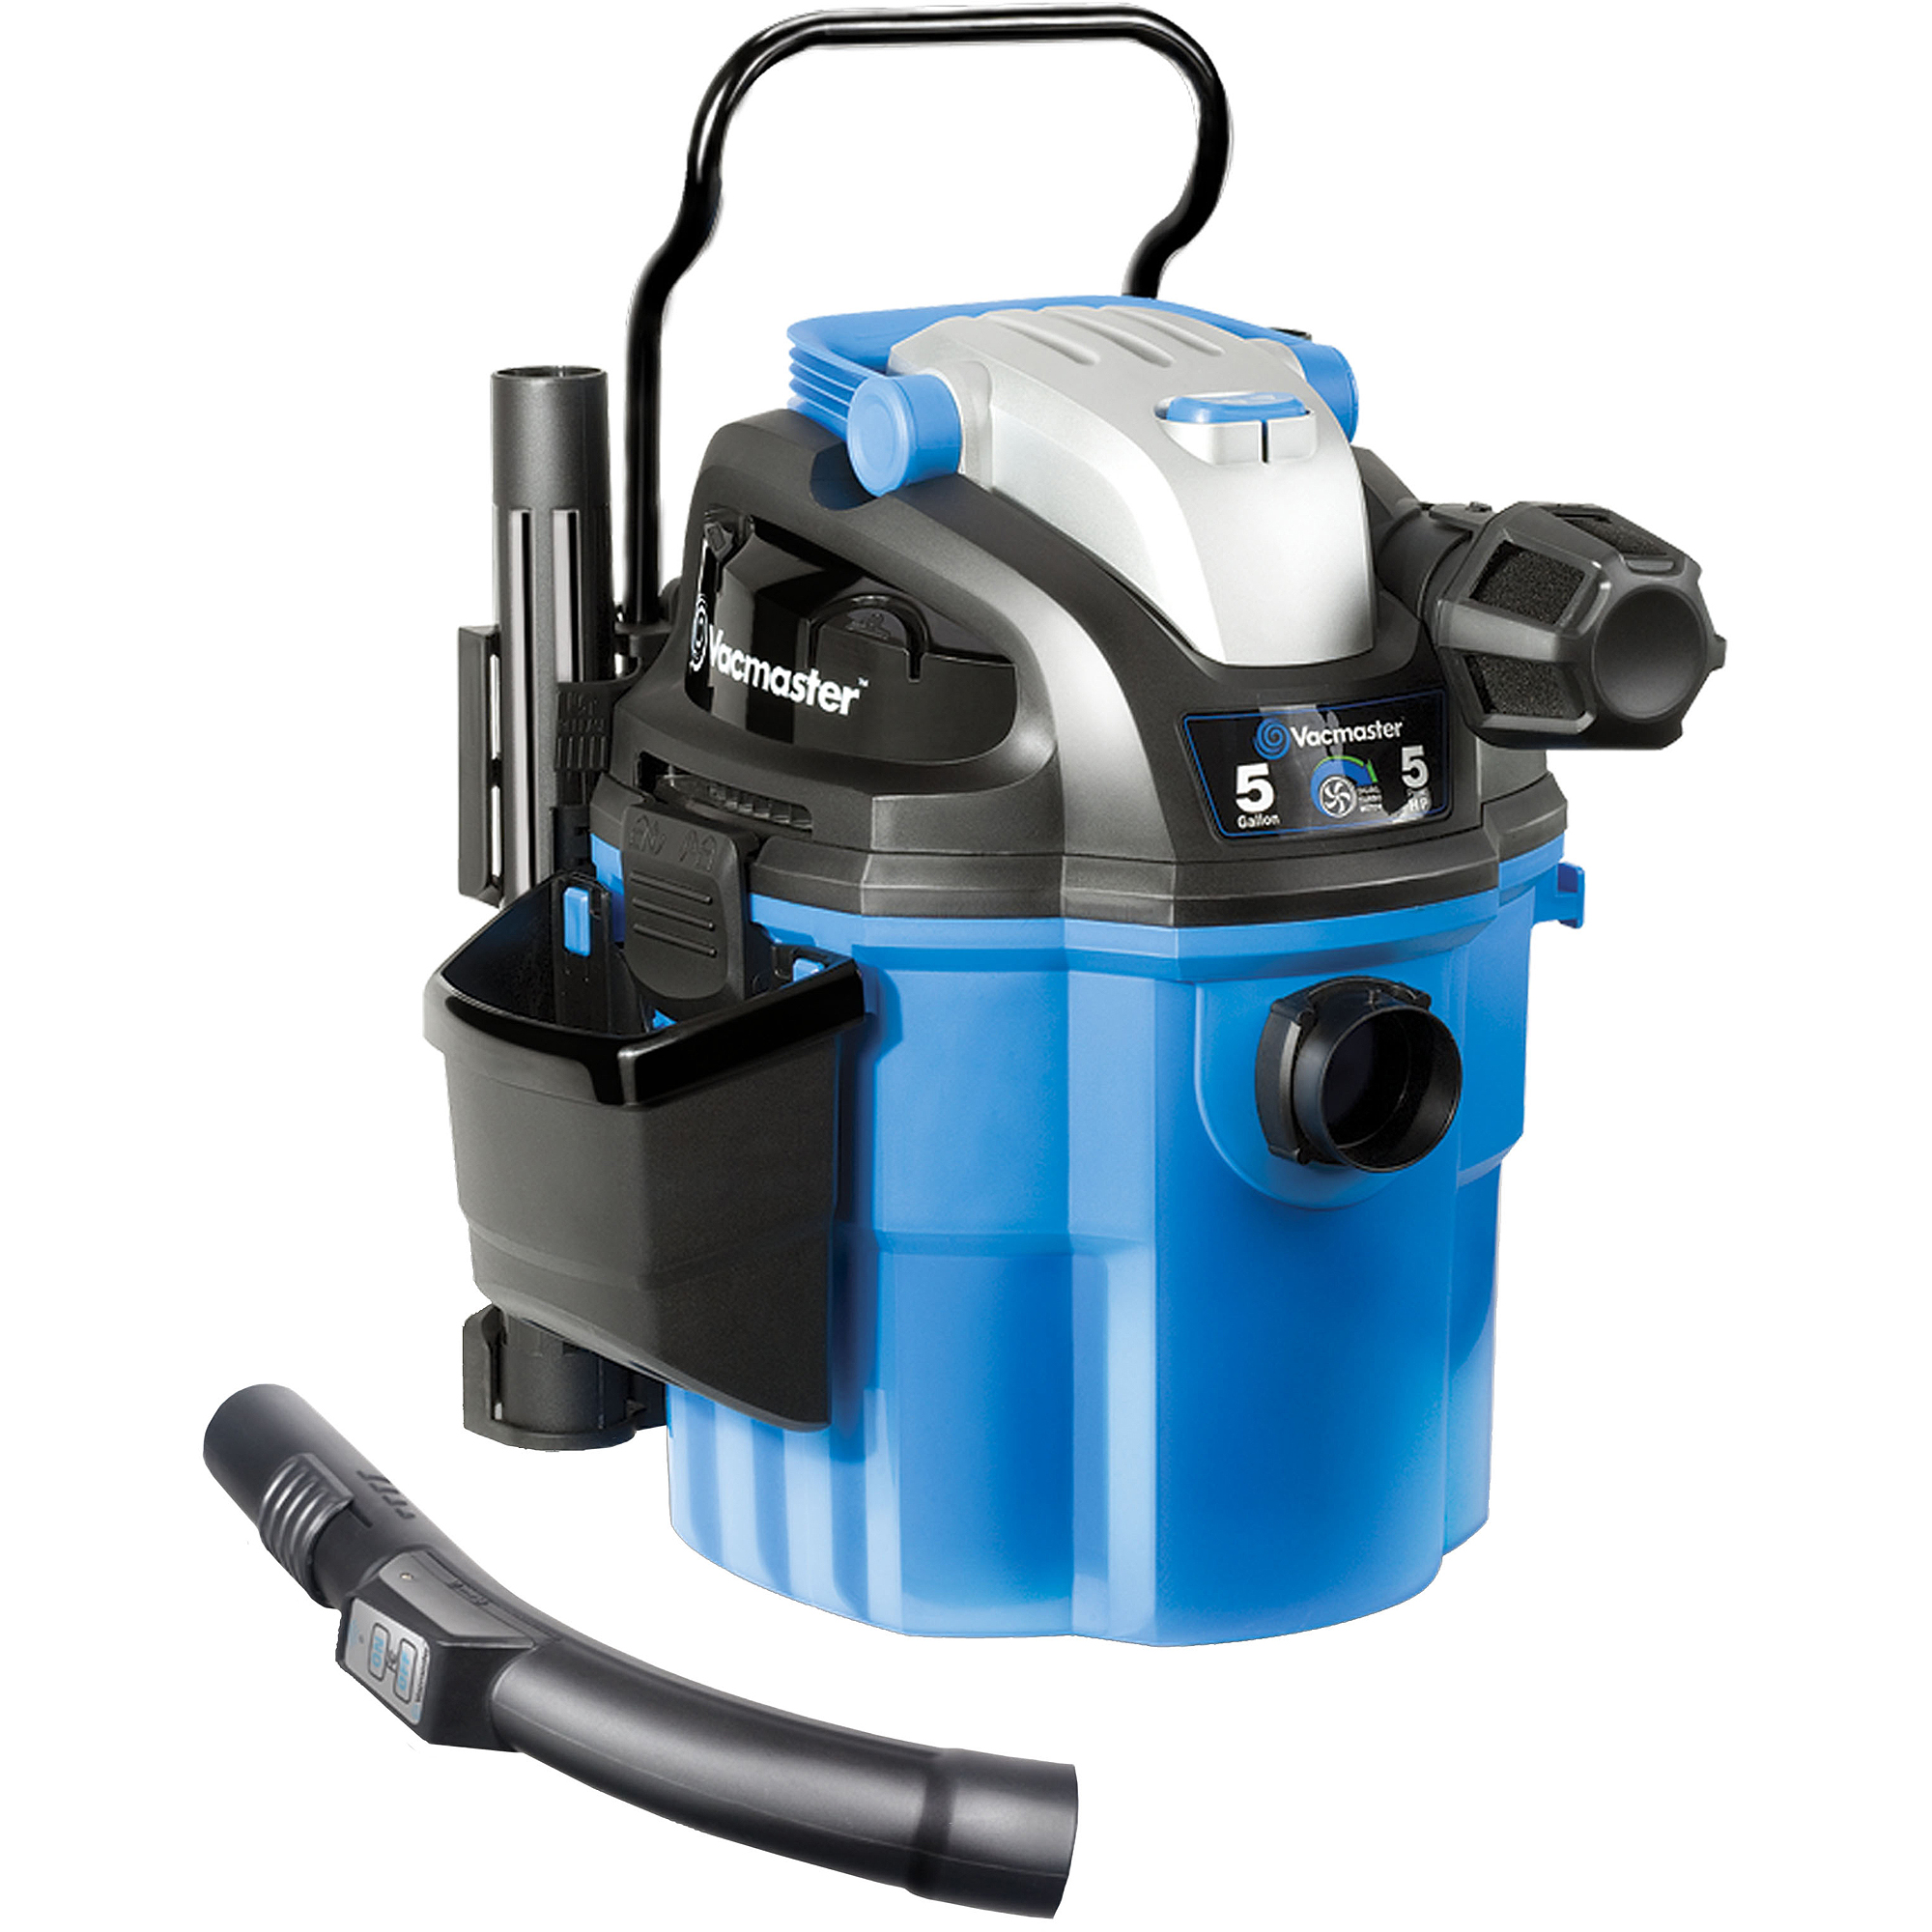 Vacmaster Wall Mountable Wet/Dry Bagless Vacuum with Remote Control, VWM510